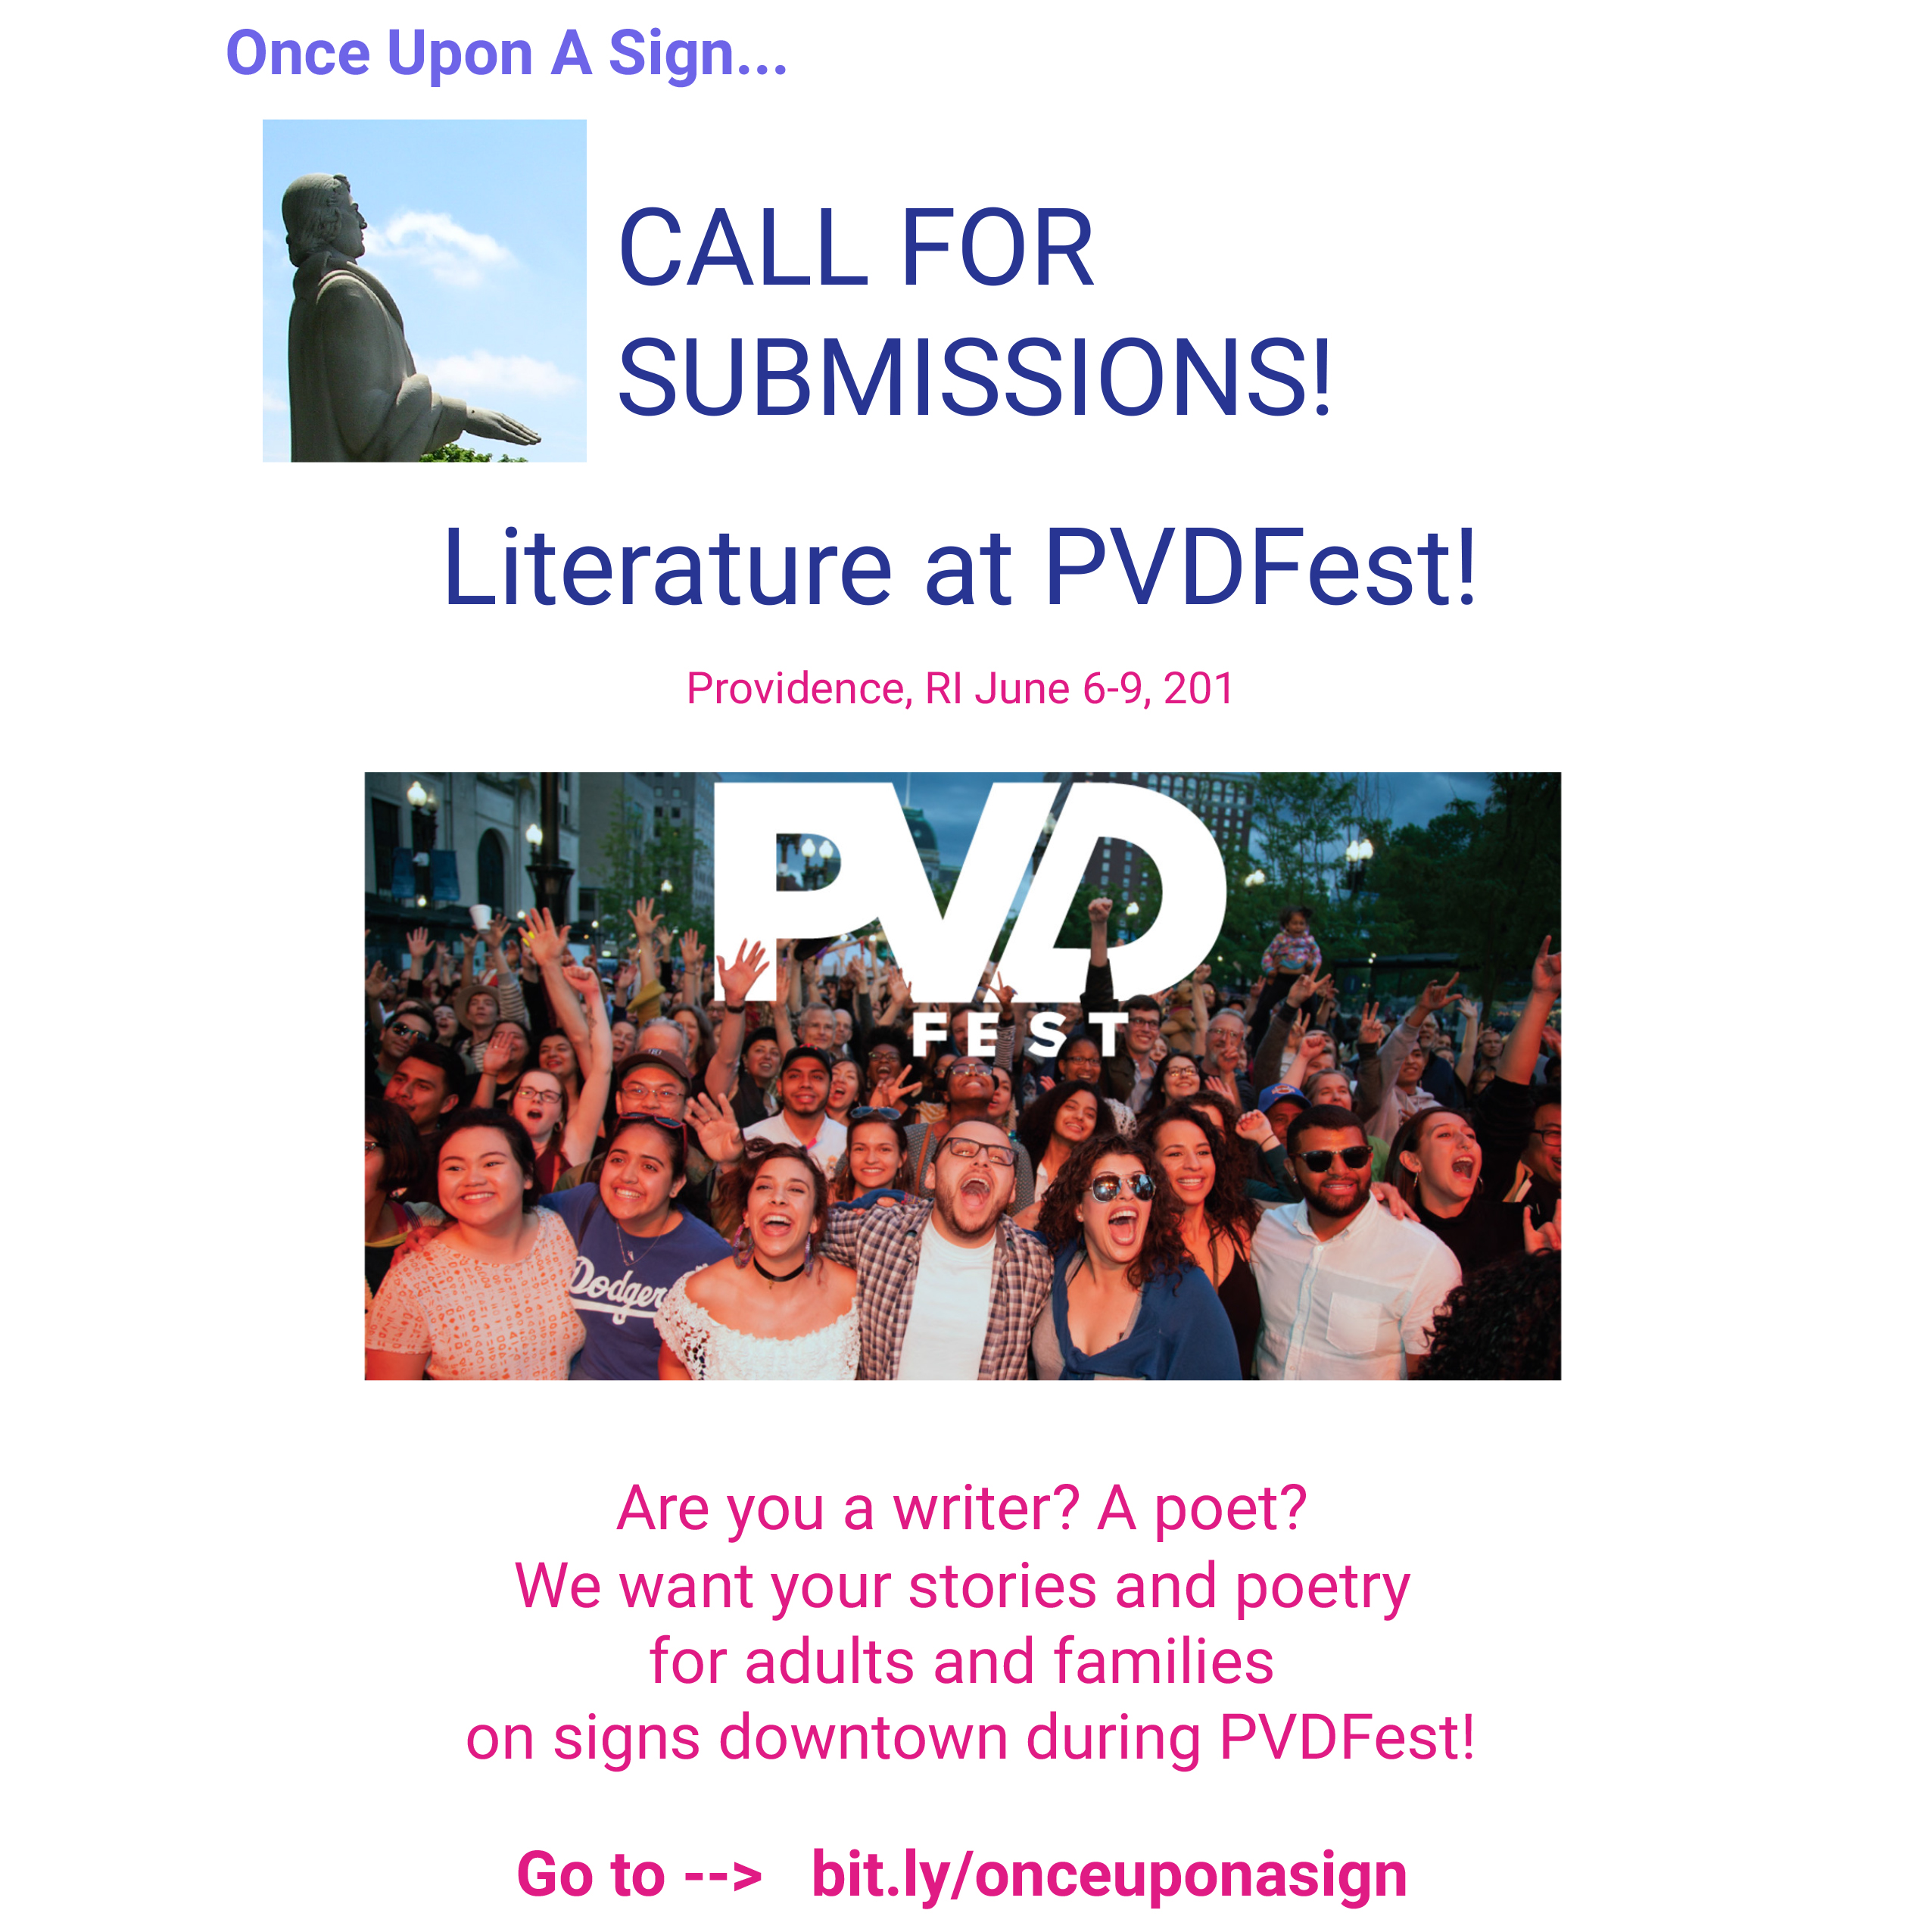 PVDFest Literature Call for Submissions - Mark Binder.jpg